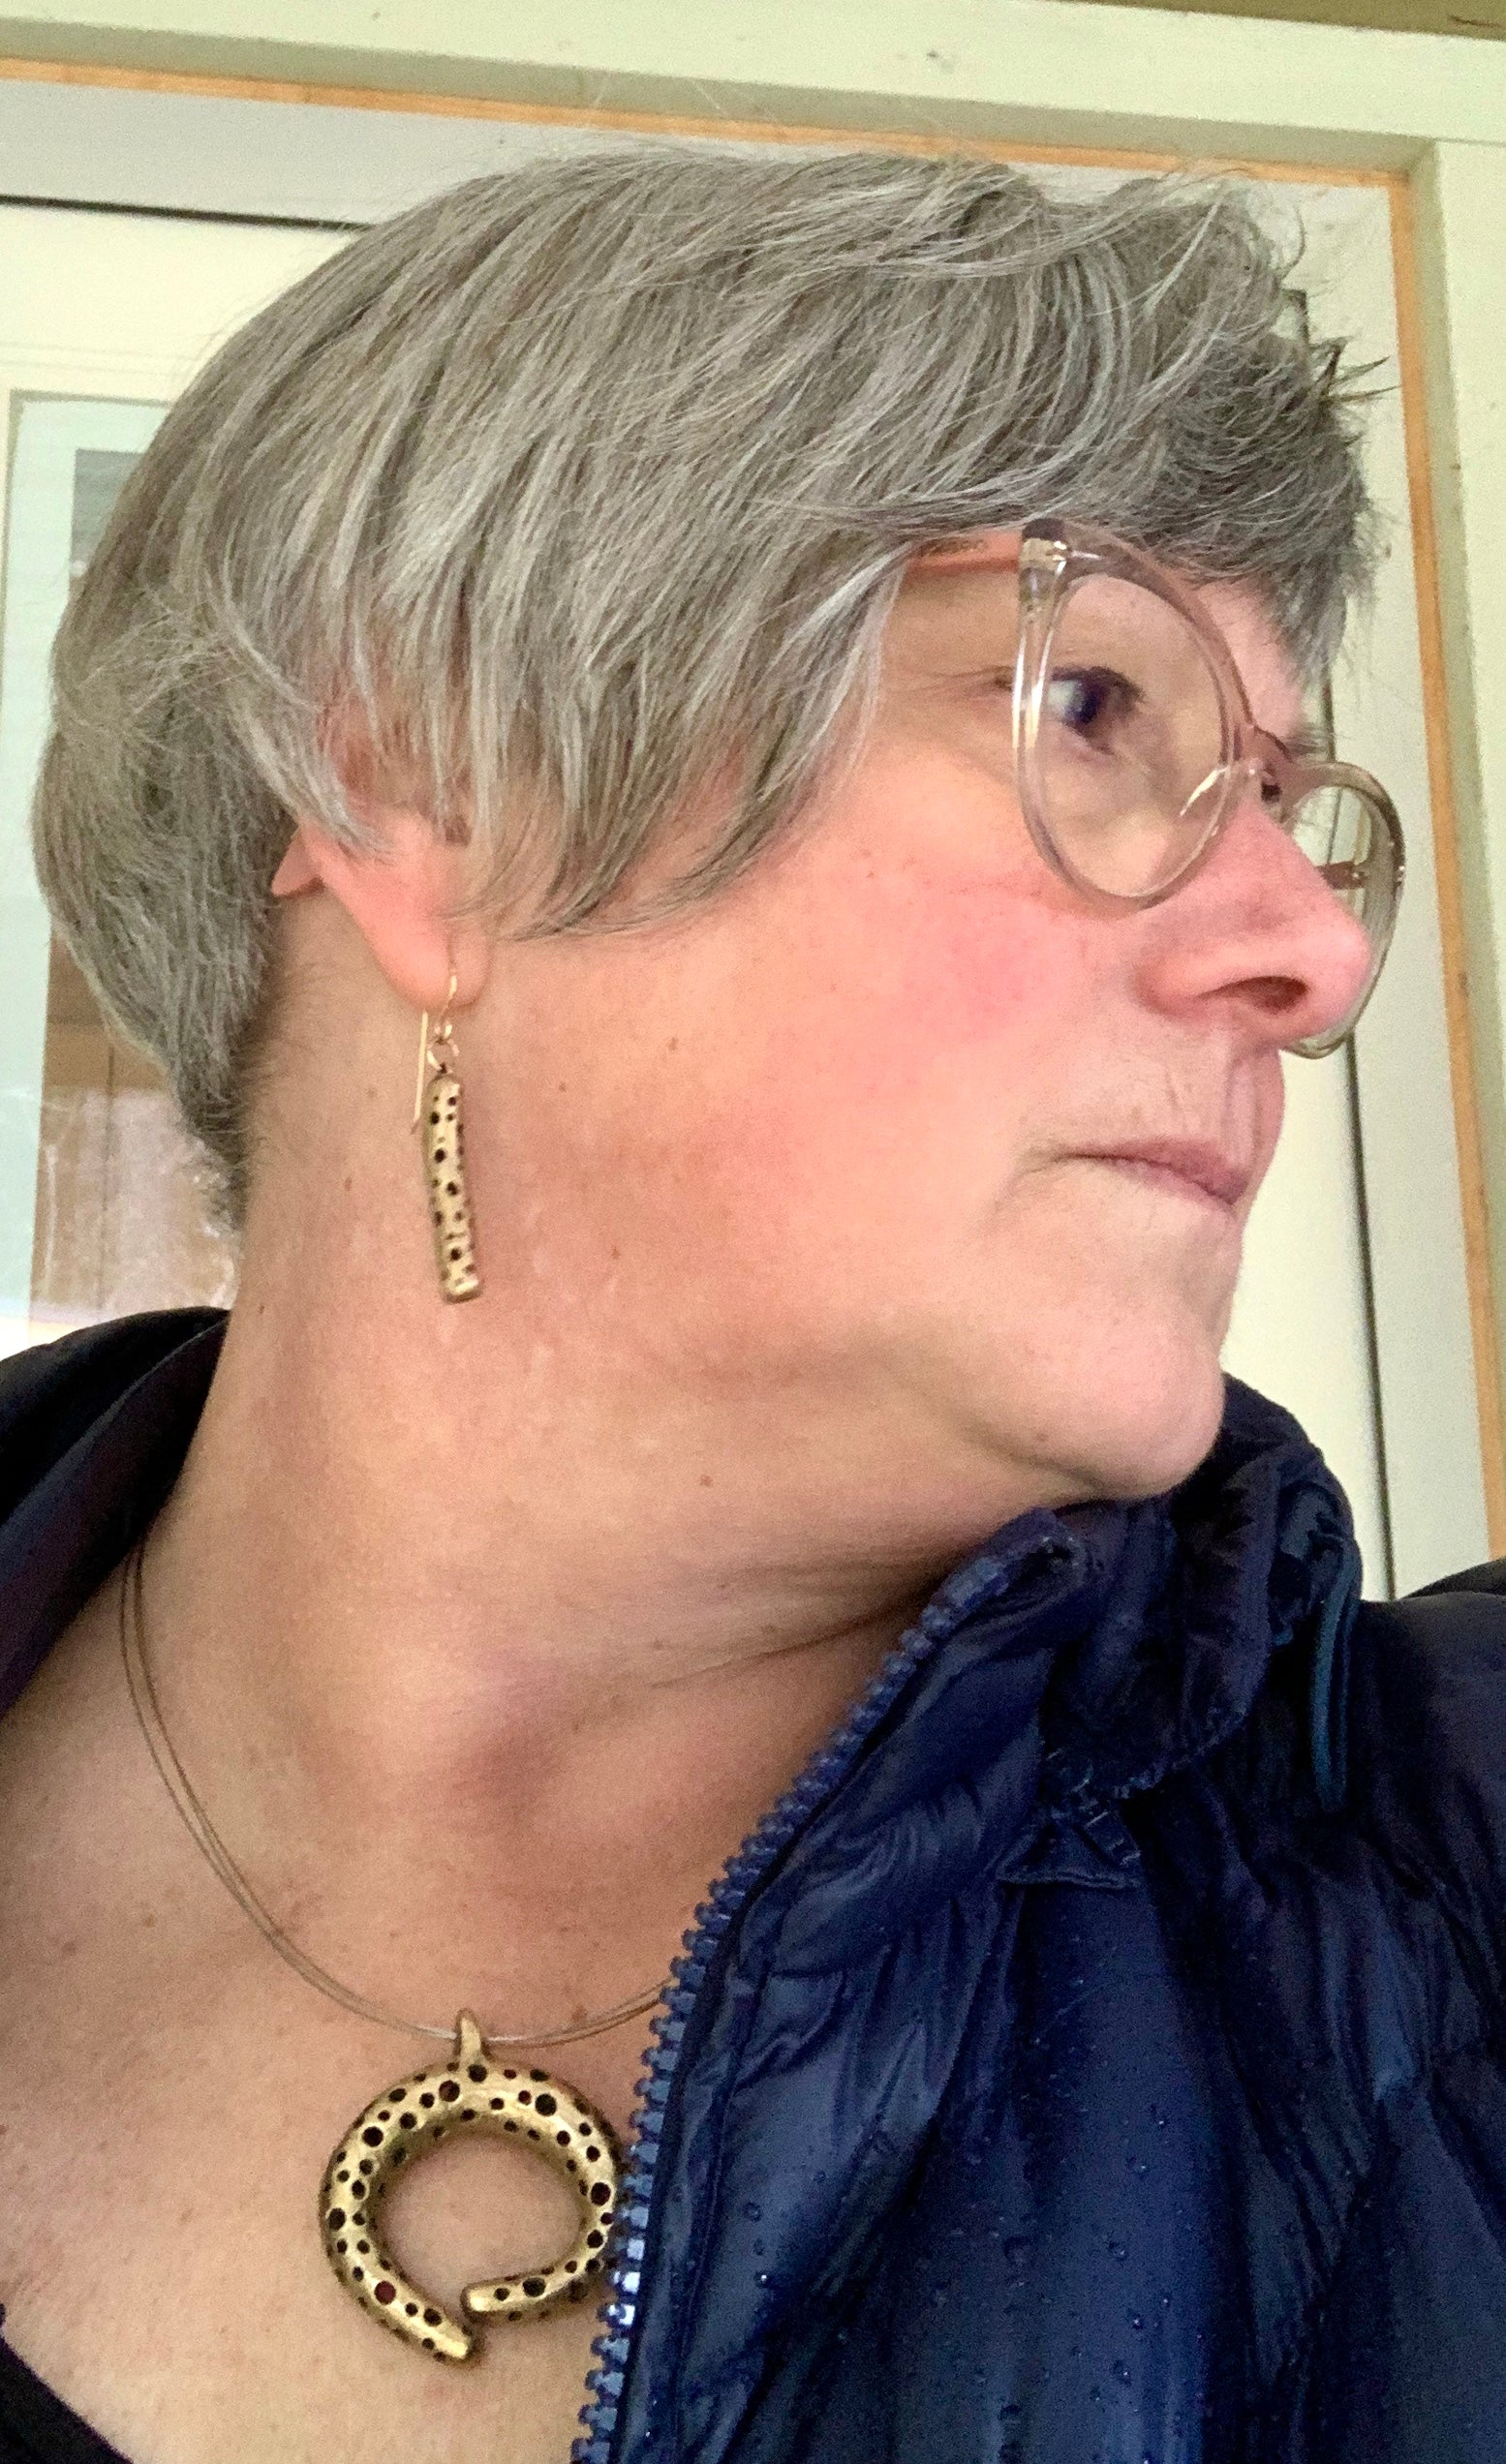 Bronze artisan made earrings and necklace